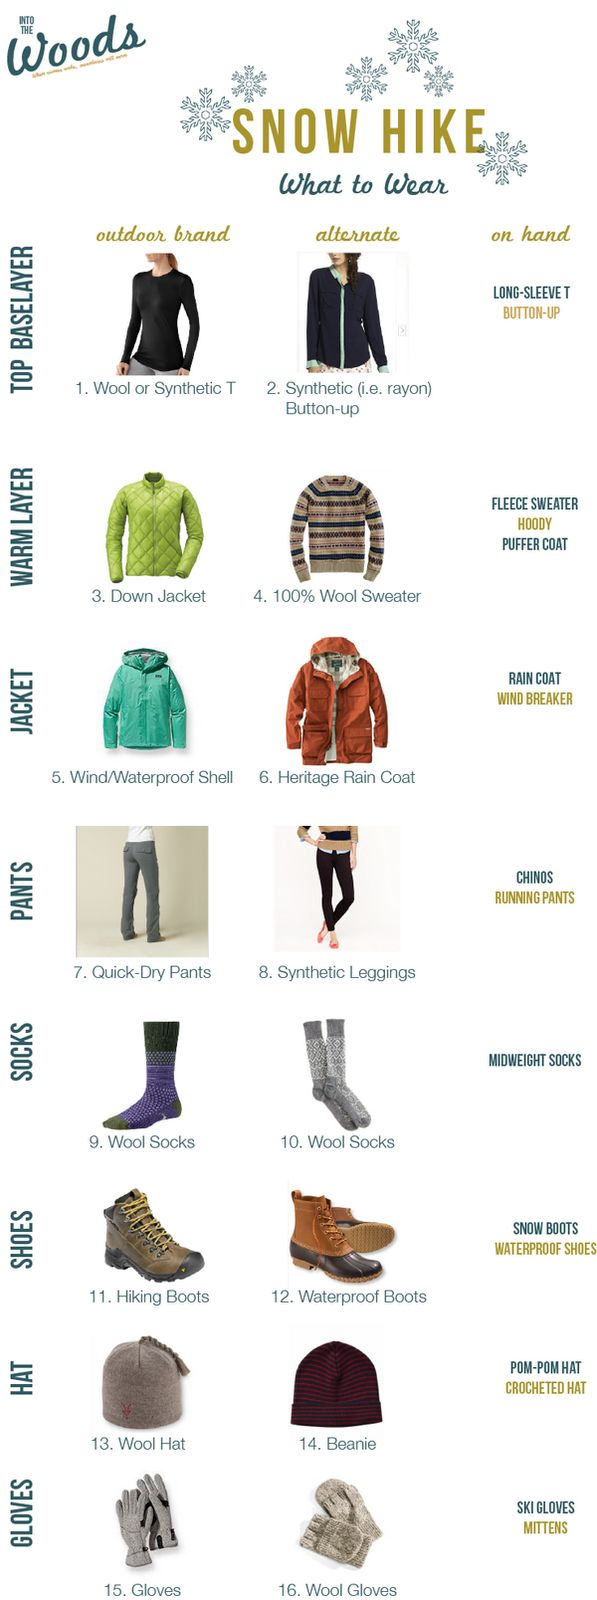 When sleeping woman wake, mountains will move - what to wear when going into the Woods